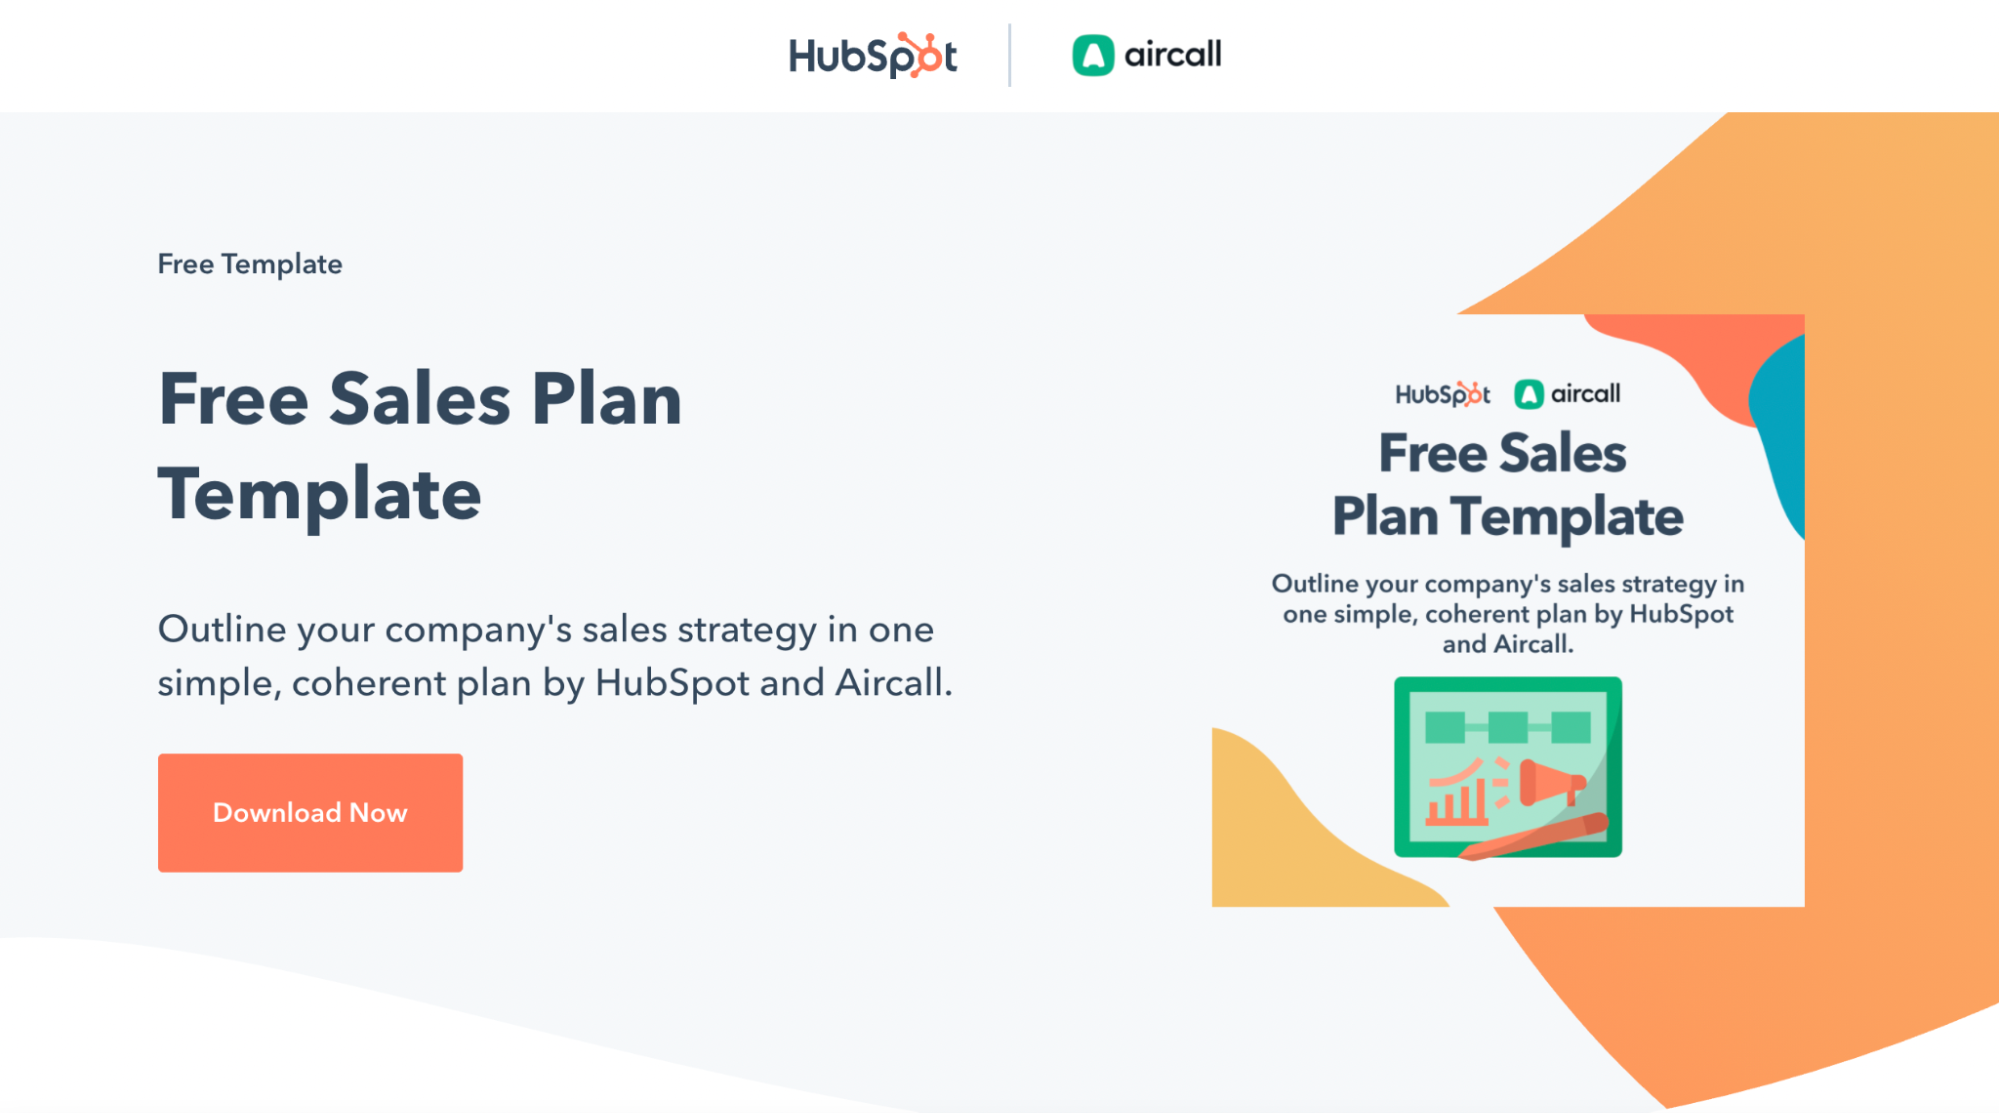 Example of a lead magnet being promoted on the HubSpot blog